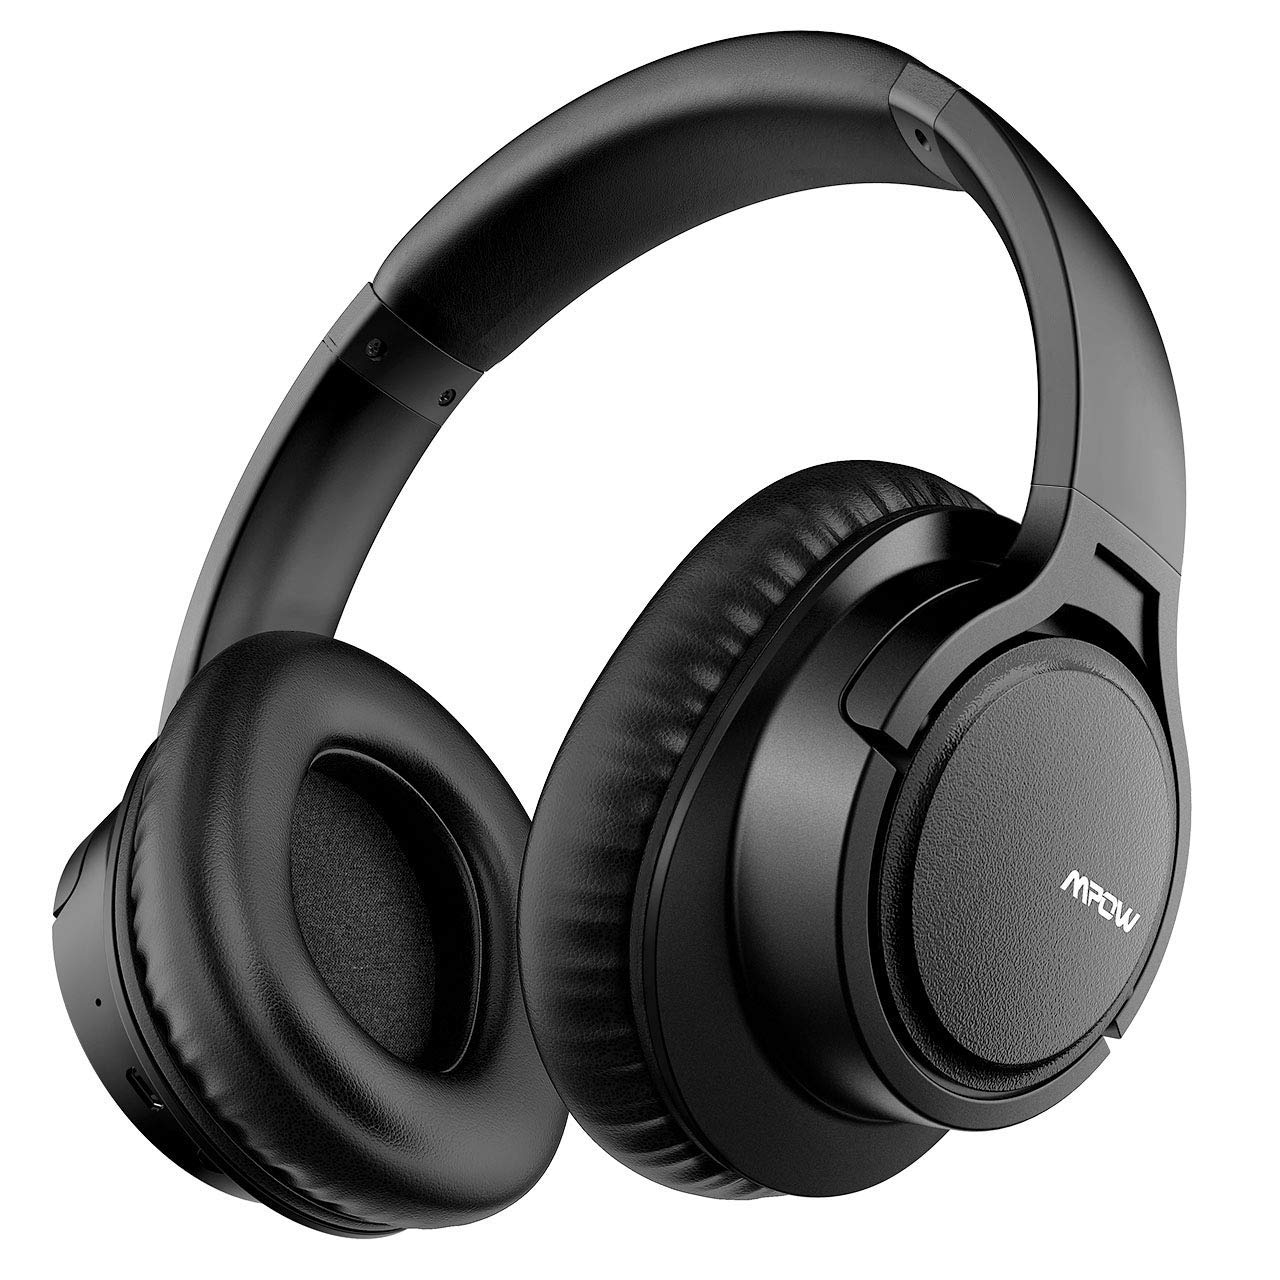 Auriculares : Mpow H7 Wireless Headphones Safe Rechargeable